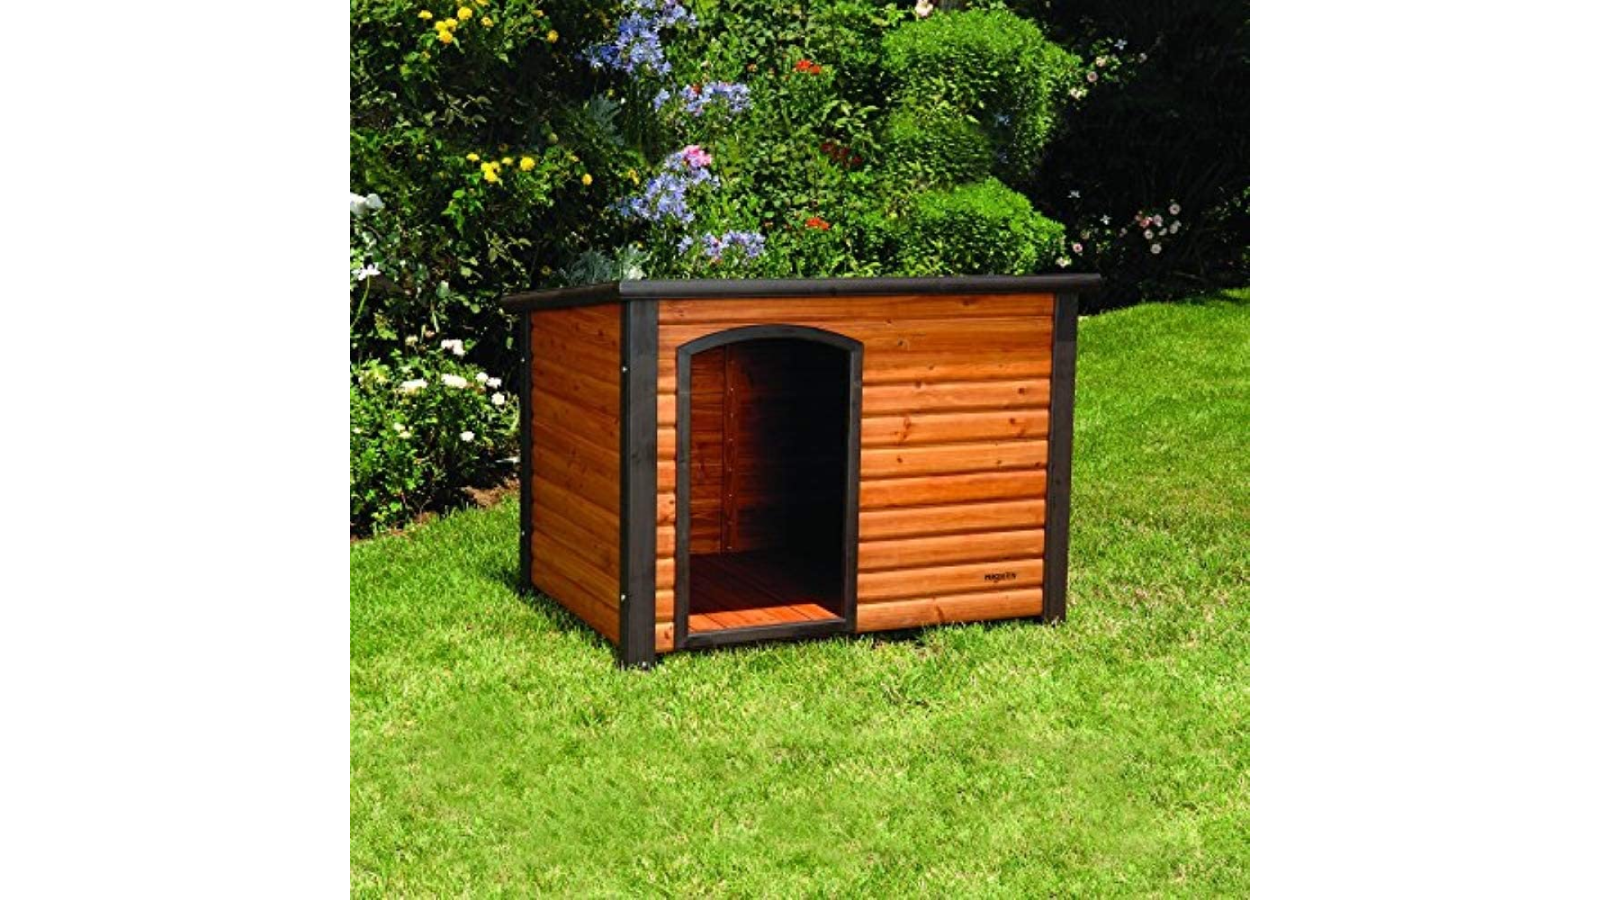 Wooden doghouse placed outside on green lawn.